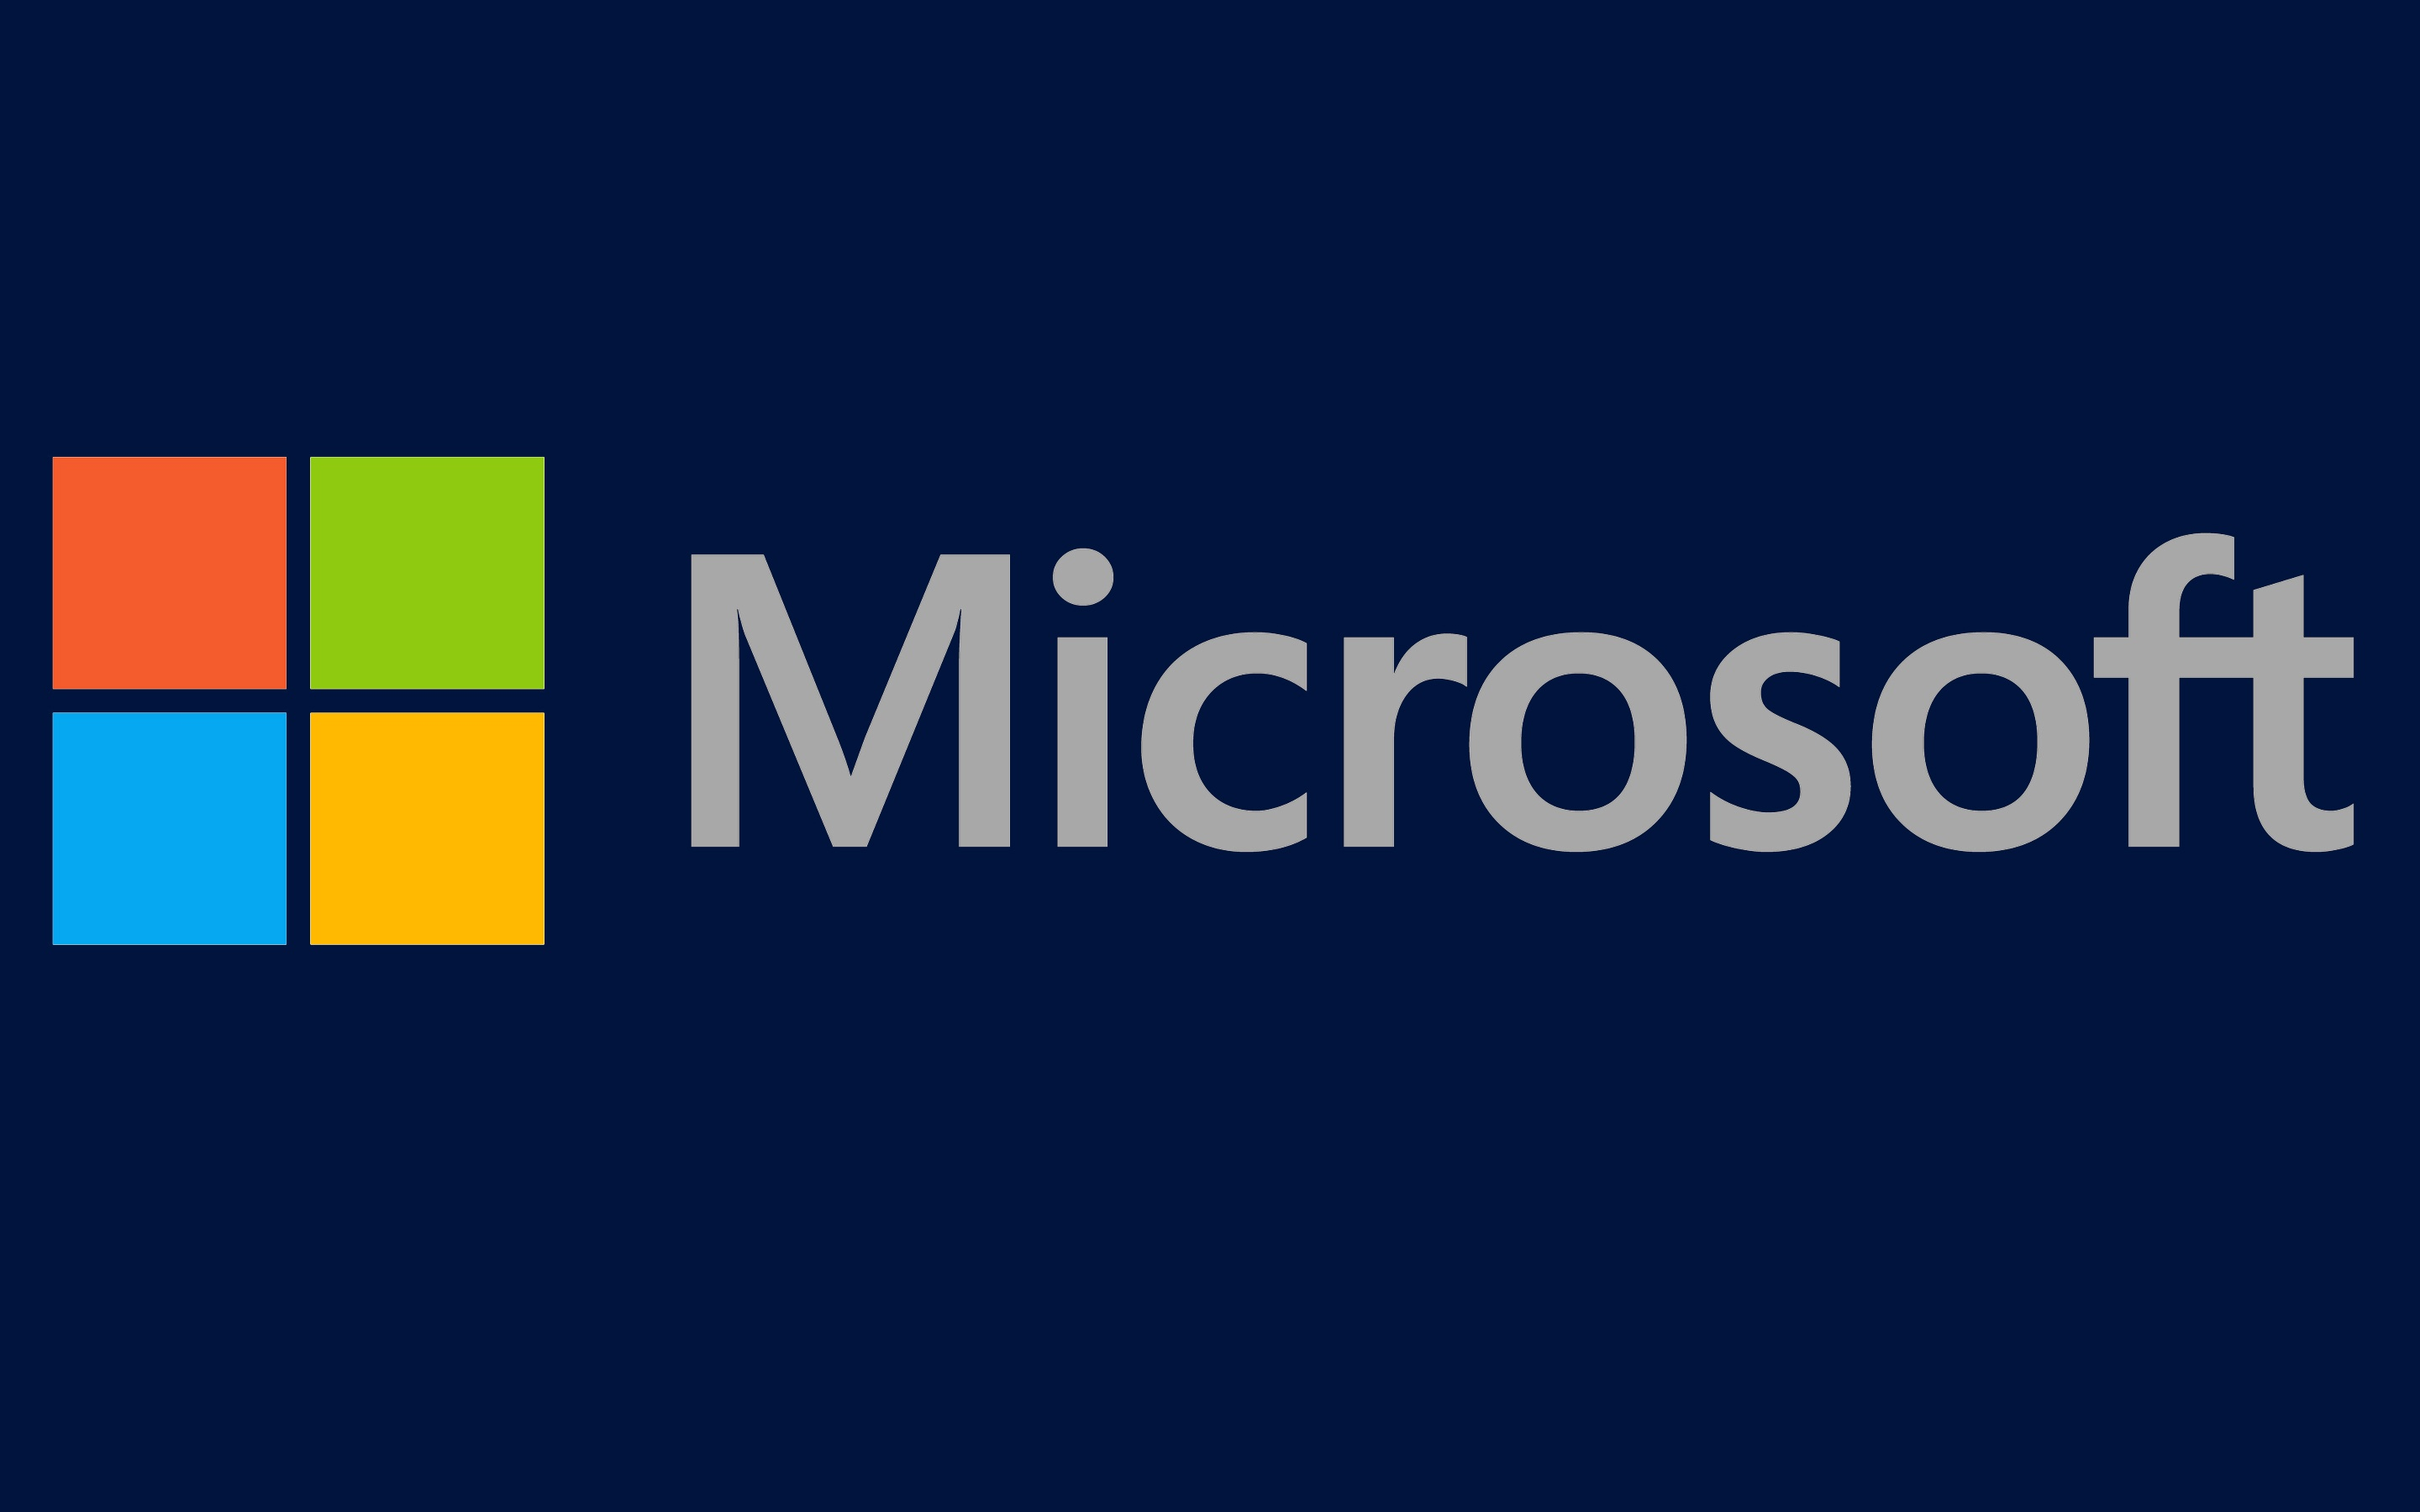 Appeals-court-decision-came-in-favor-of-Microsoft